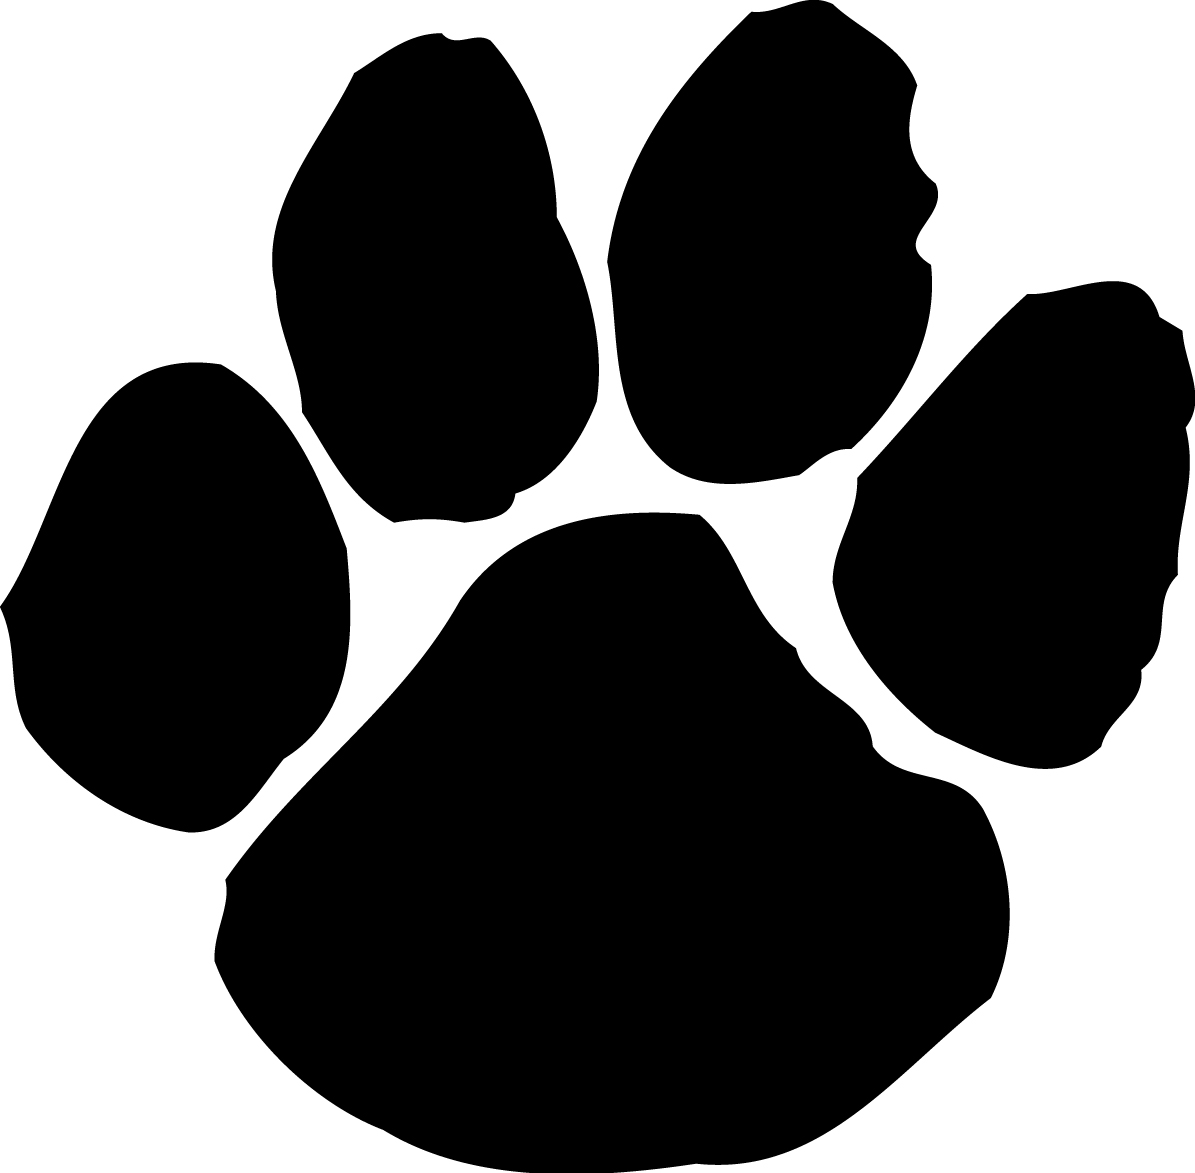 Paw clipart #12, Download drawings